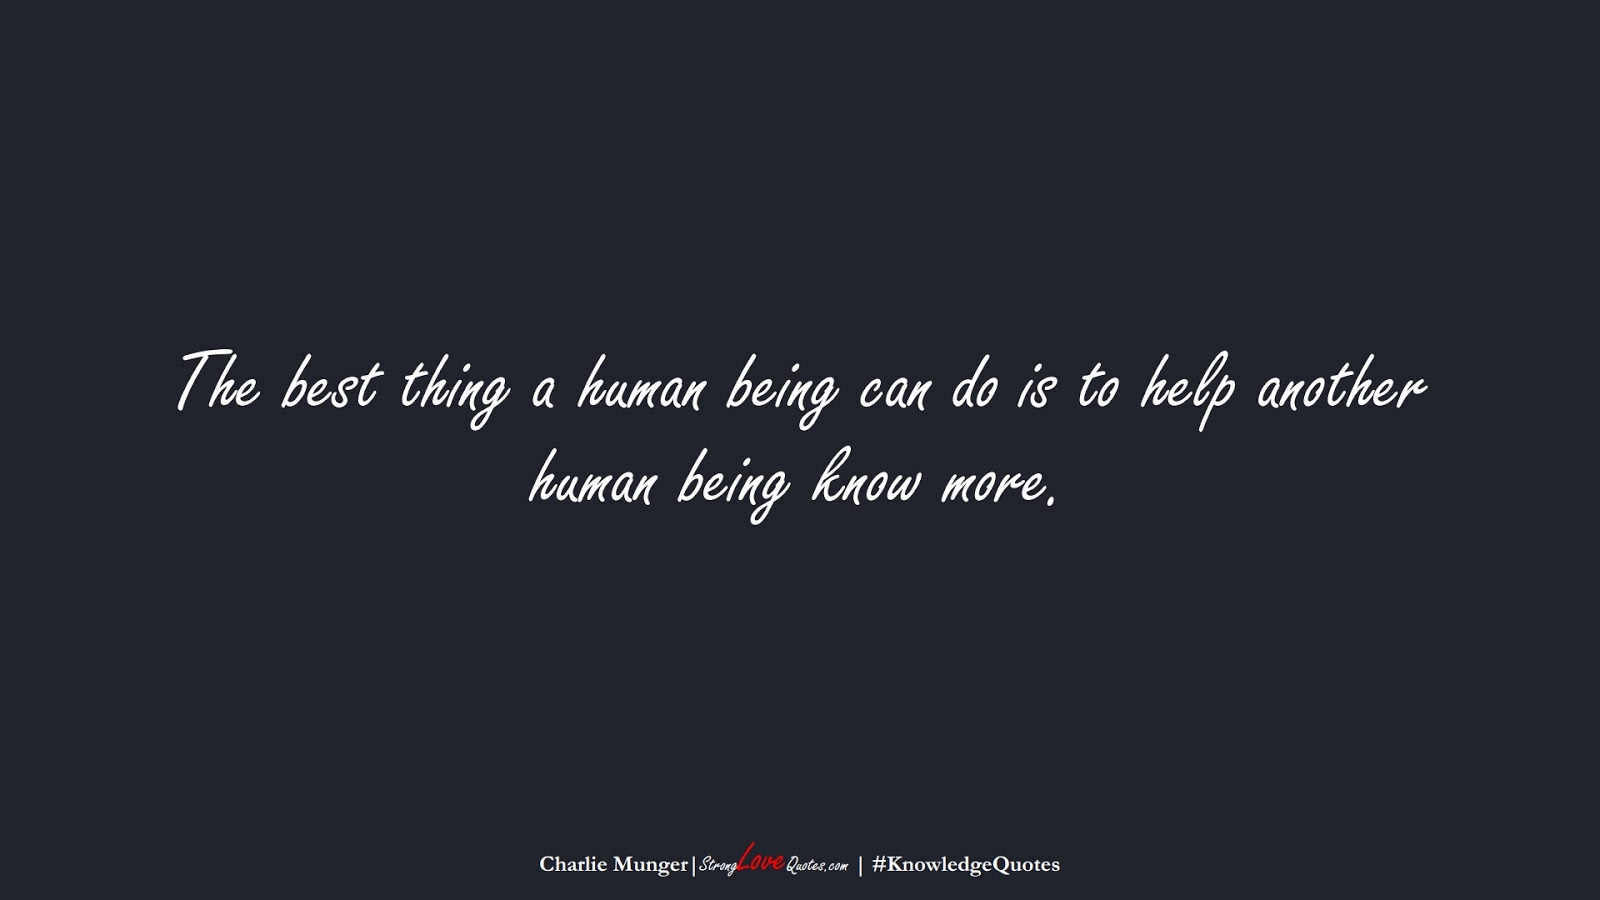 The best thing a human being can do is to help another human being know more. (Charlie Munger);  #KnowledgeQuotes